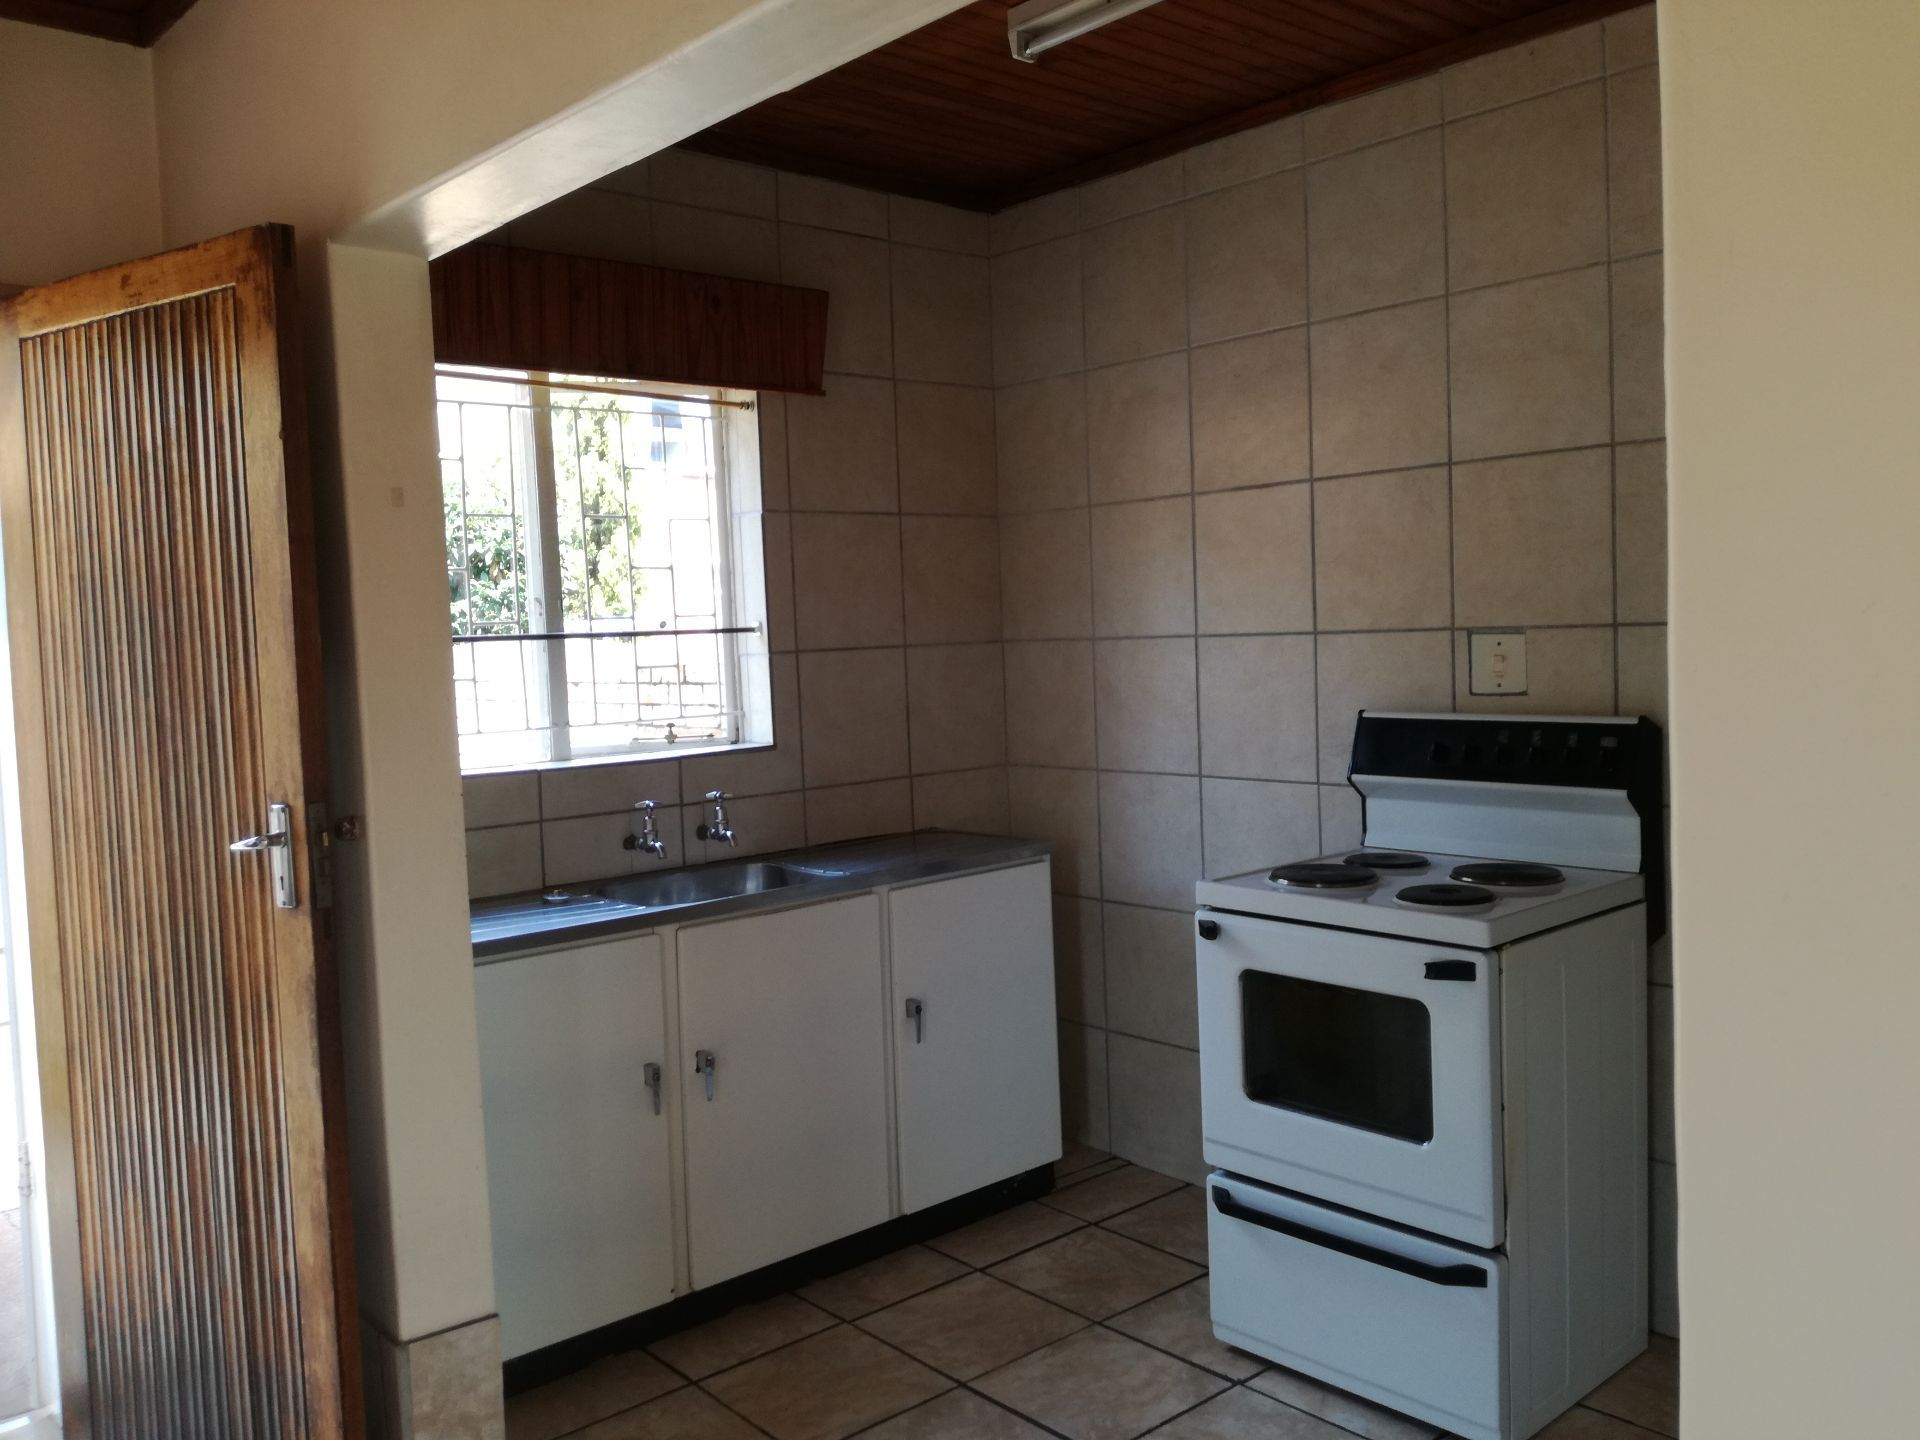 House in Central - kitchen